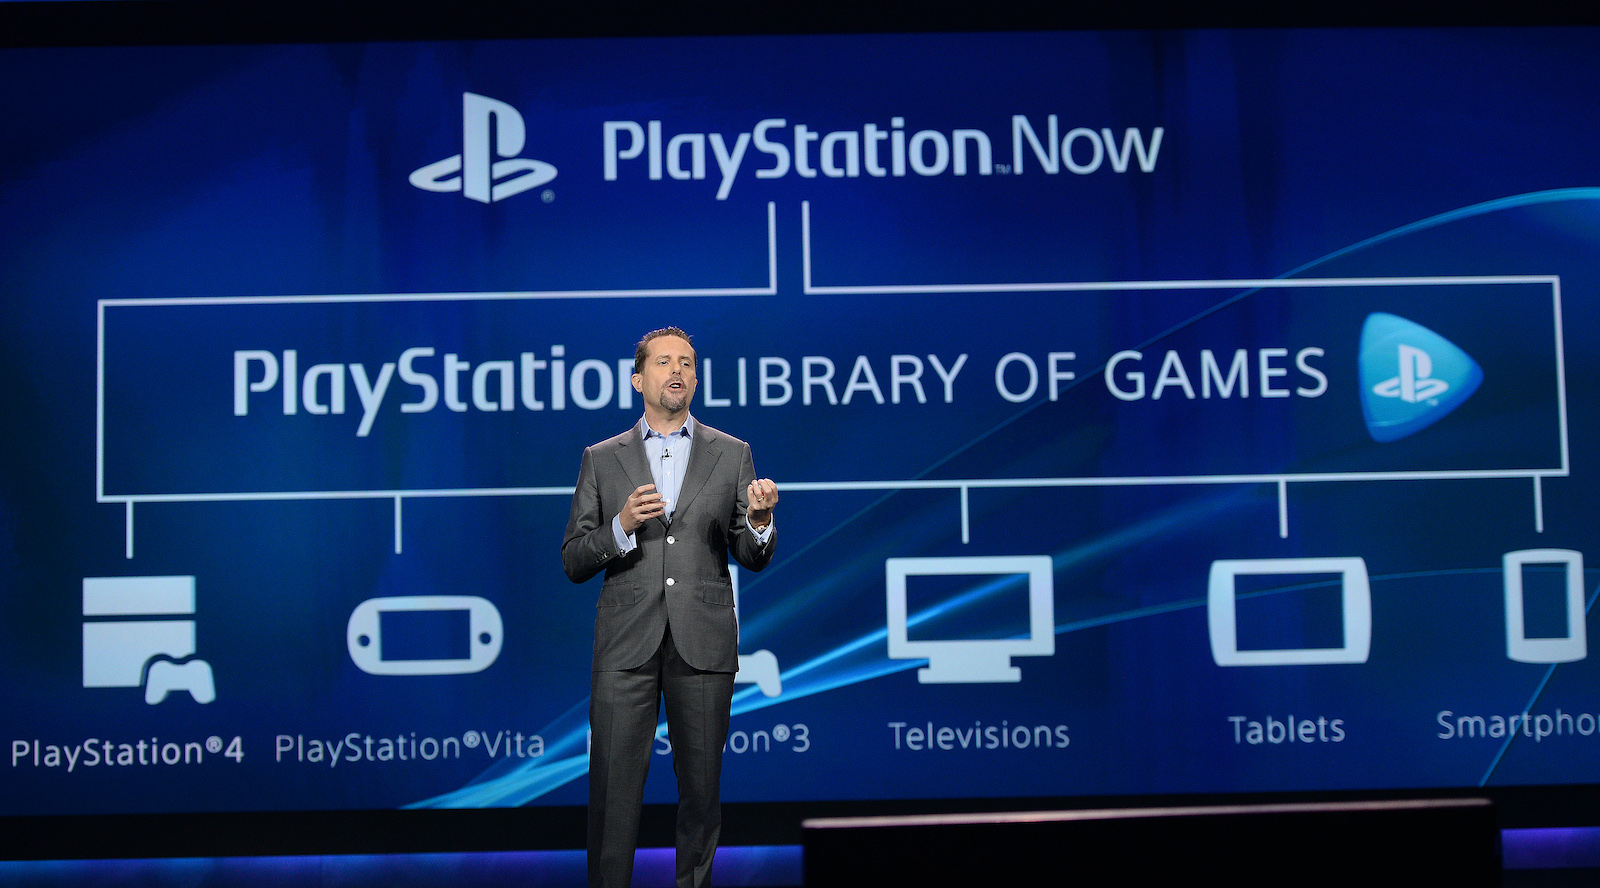 Andrew House, president and group CEO, Sony Computer Entertainment, announces PlayStation Now streaming game service during the keynote address by Sony CEO and President Kazuo Hirai on the opening day of the 2014 International CES on January 7, 2014 in Las Vegas, Nevada.   AFP PHOTO / ROBYN BECK        (Photo credit should read ROBYN BECK/AFP via Getty Images)